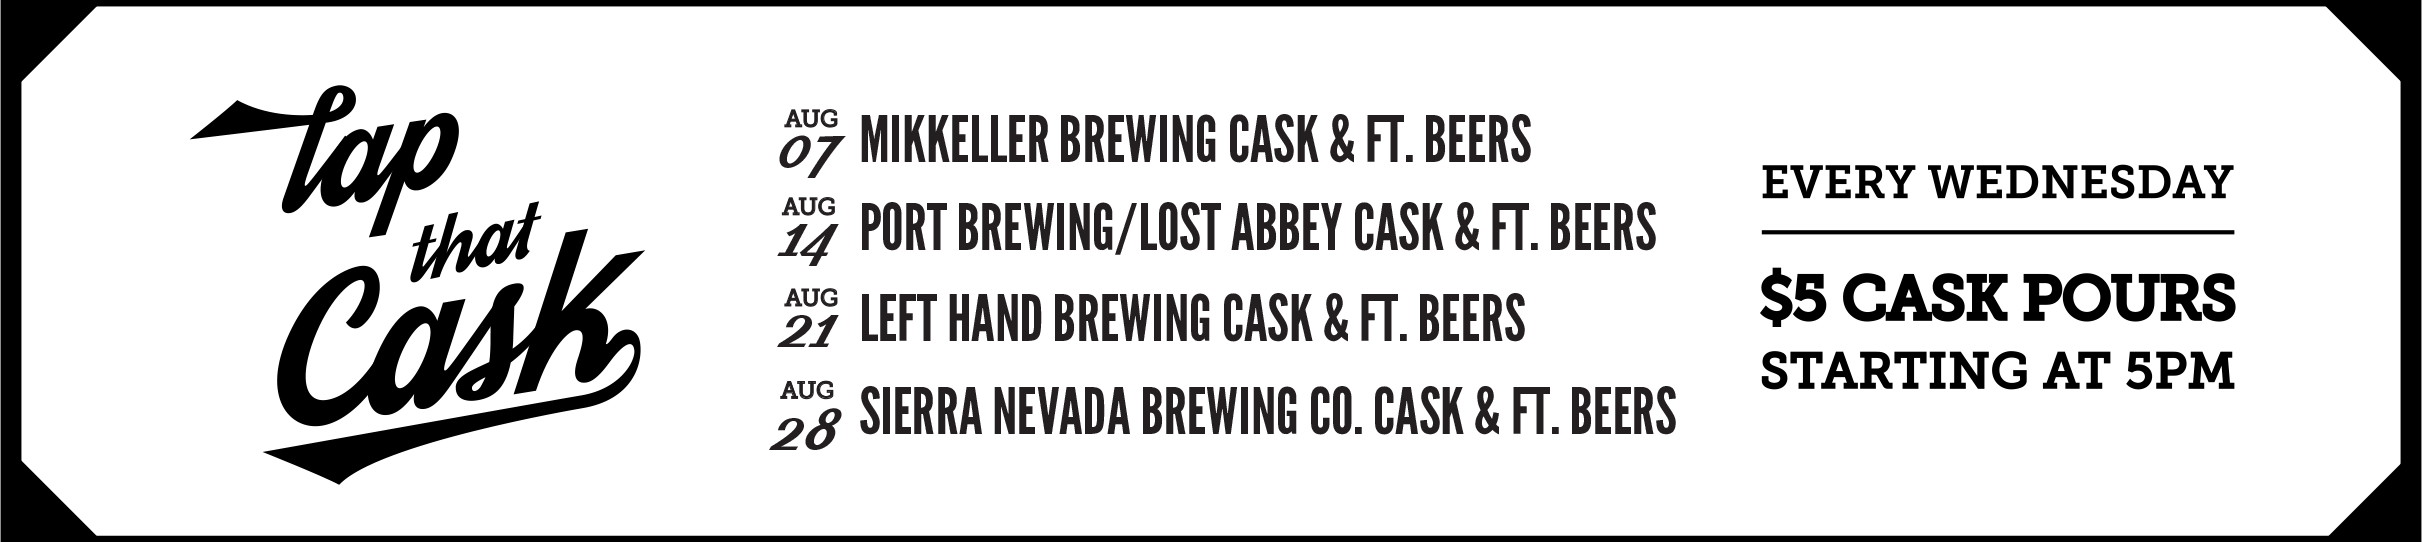 Tap That Cask - August 2019